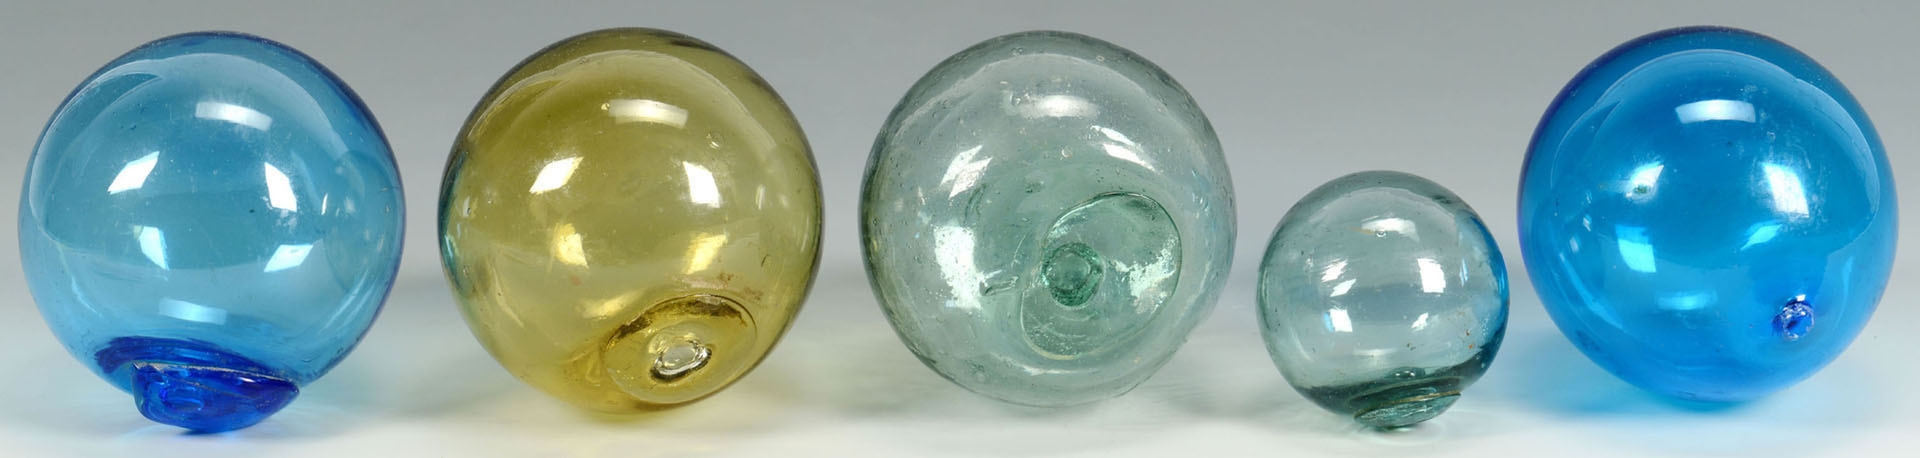 Lot 515: Group of 7 Colored Blown Glass Whimsy Balls